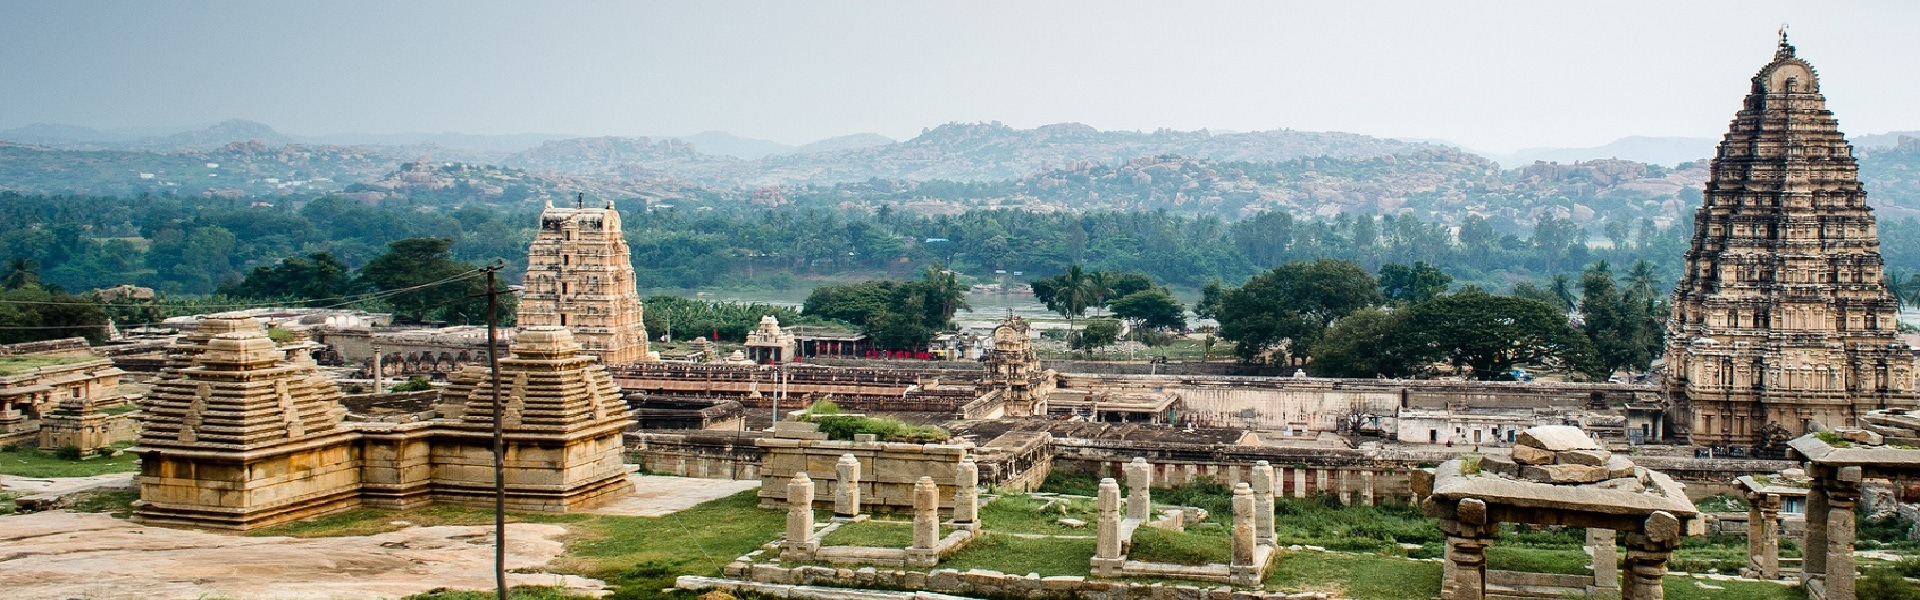 11 Places to visit in November in India